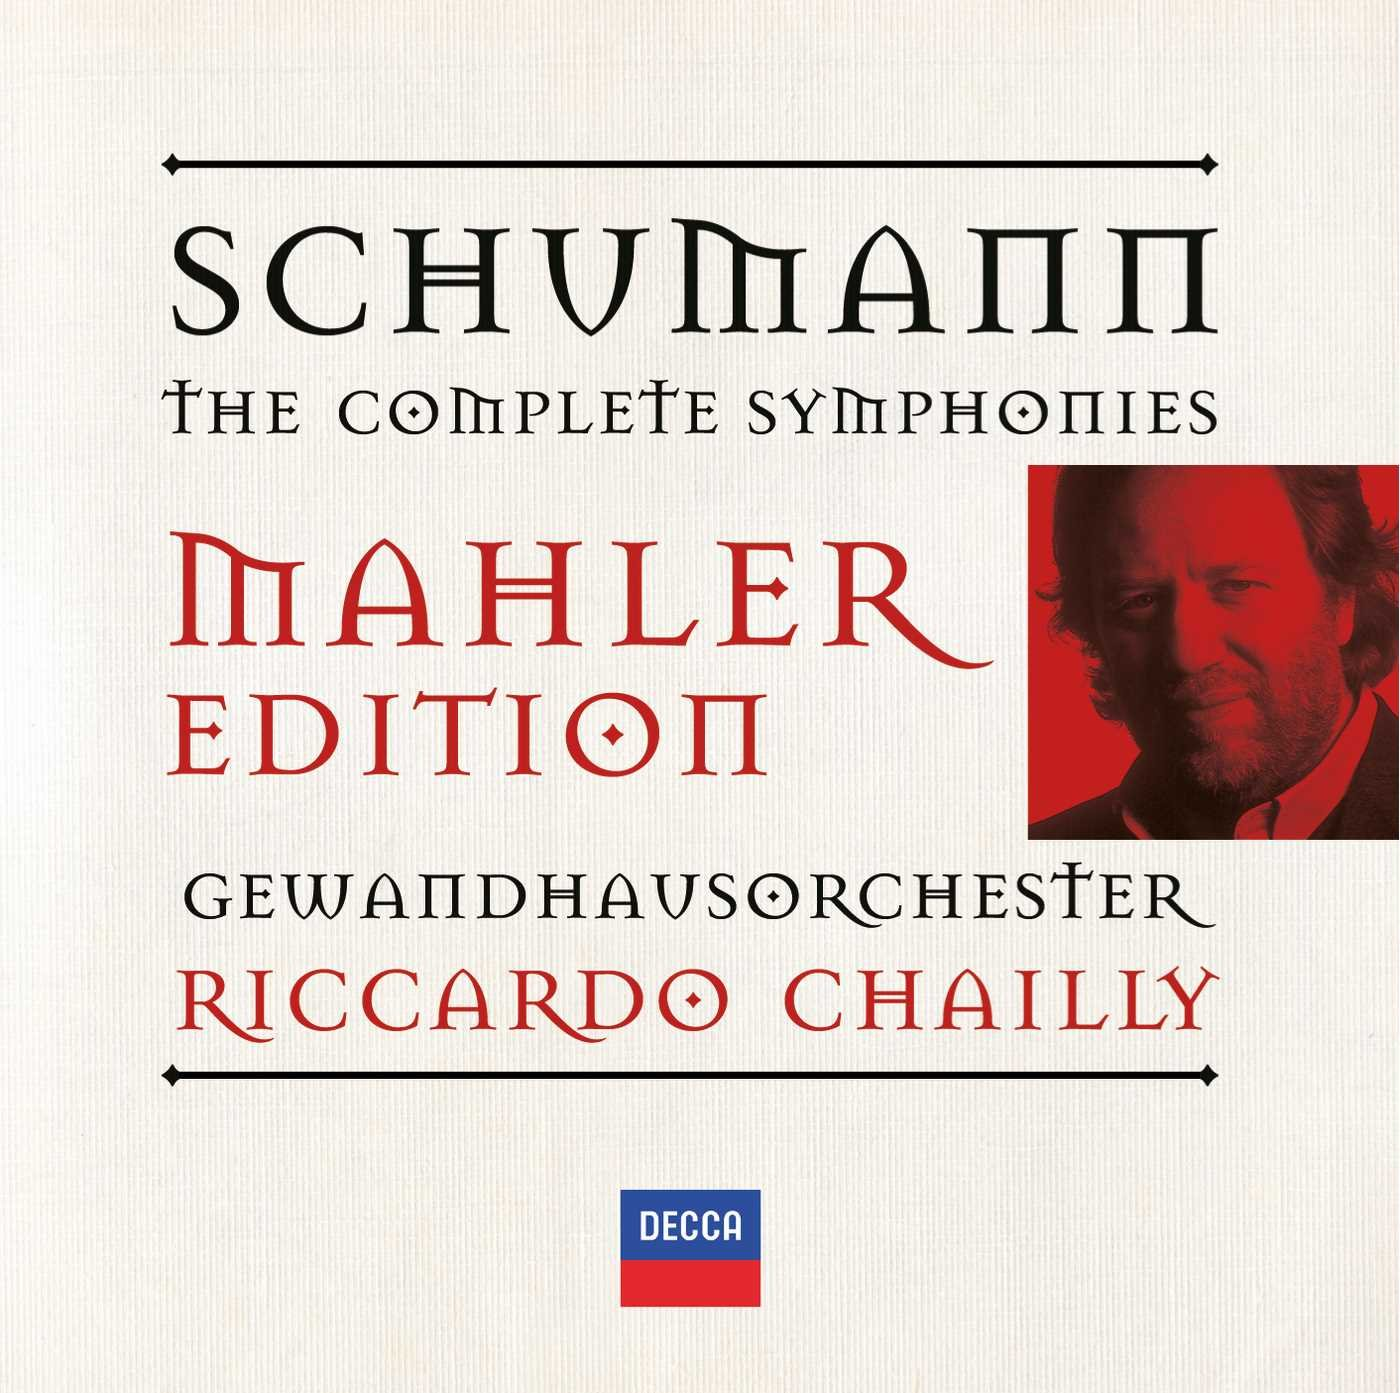 Riccardo Chailly. Schumann: The Symphonies (2 CD) 32a spring lever push cable connector terminal block from 2 3 5 way